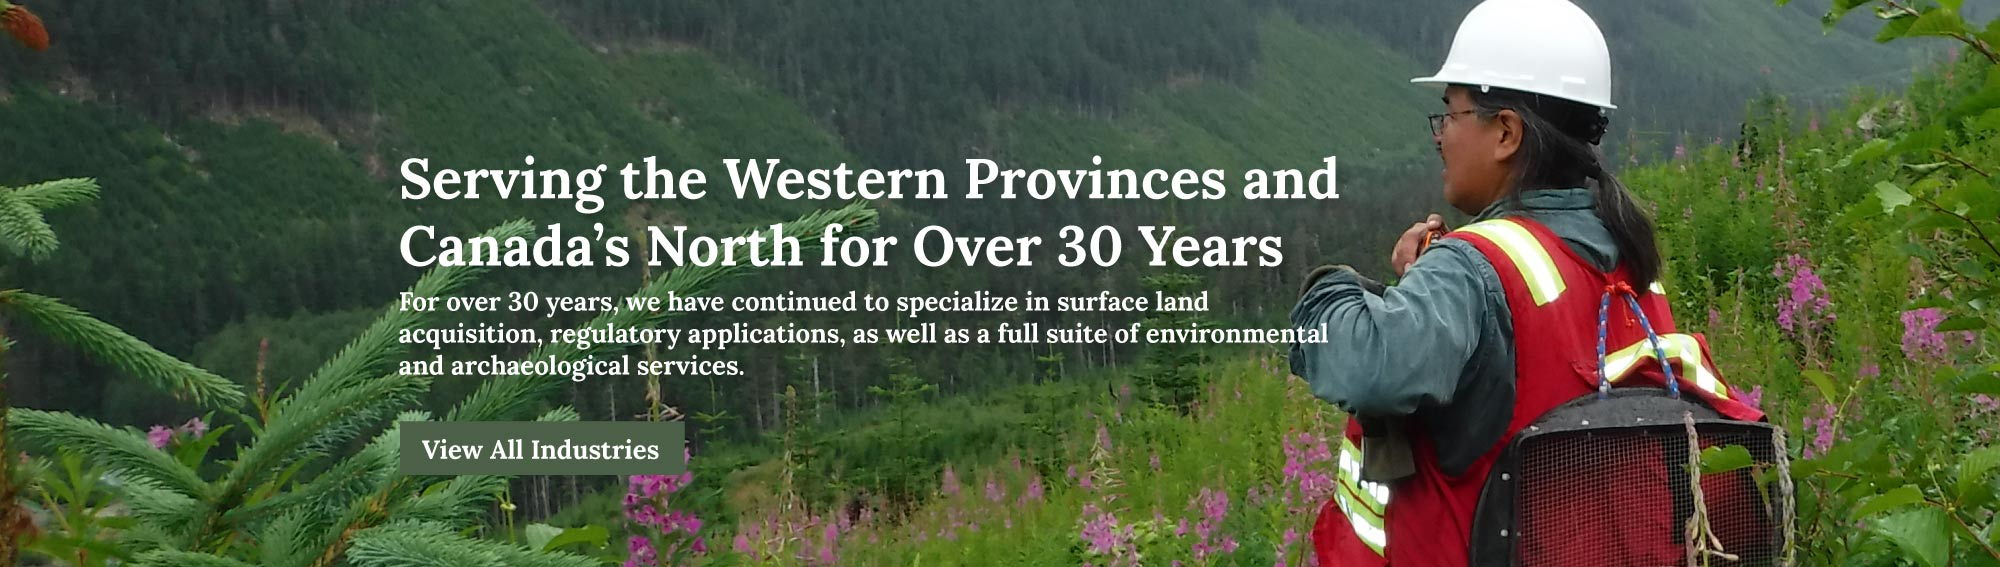 Serving Western Provinces and Canada's North for 30 Years